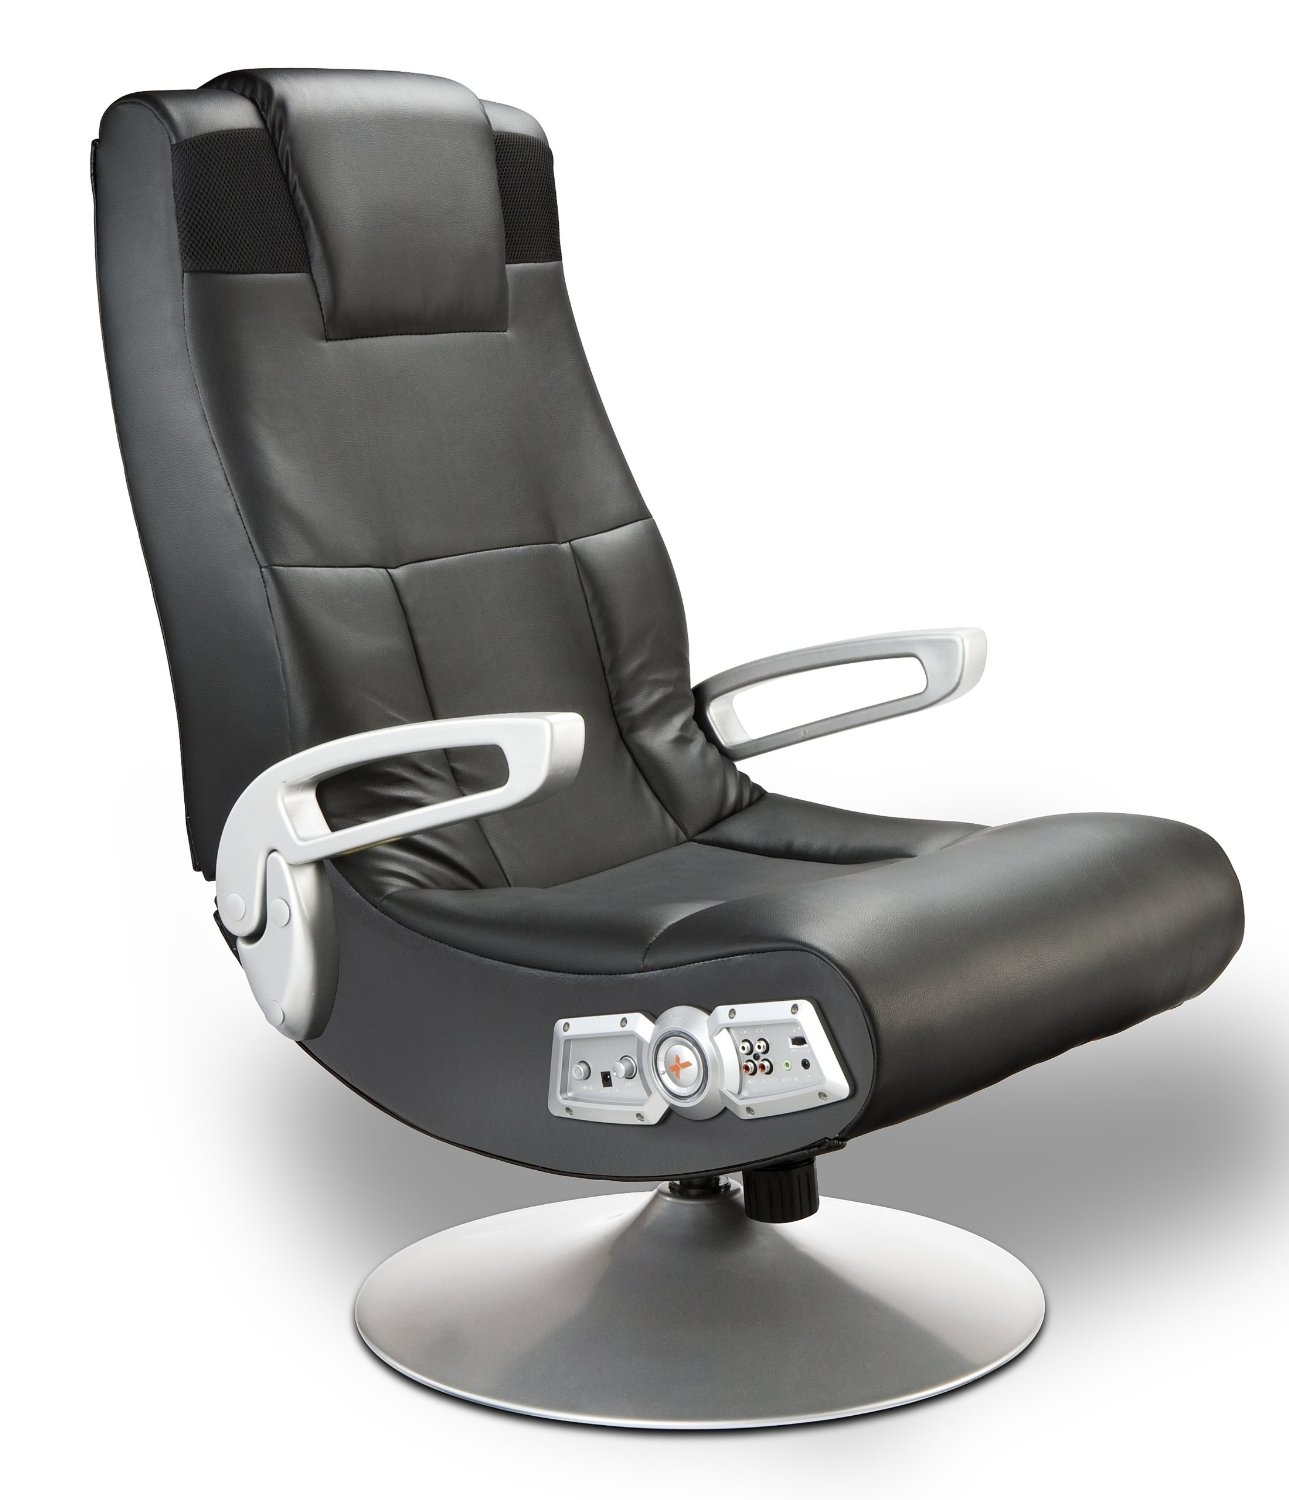 Video Game Chairs Buy X Rocker 5127401 Pedestal Video Gaming Chair Wireless Black